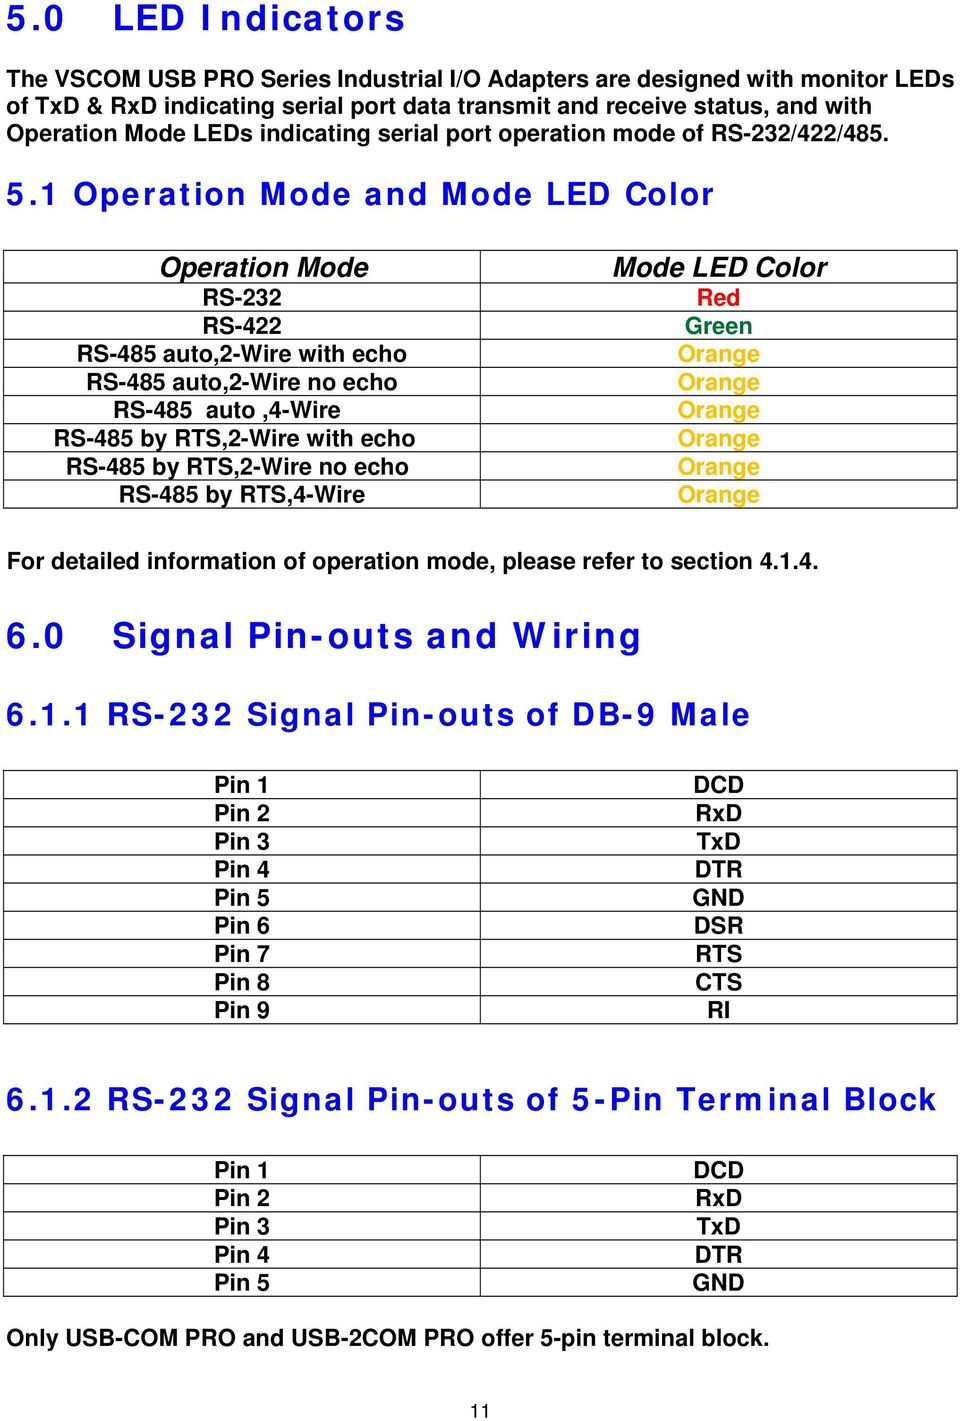 Vscom Usb Pro Series Industrial I O Adapters Pdf Ethernet Rs 485 2wire Pinout Diagram 1 Operation Mode And Led Color 232 422